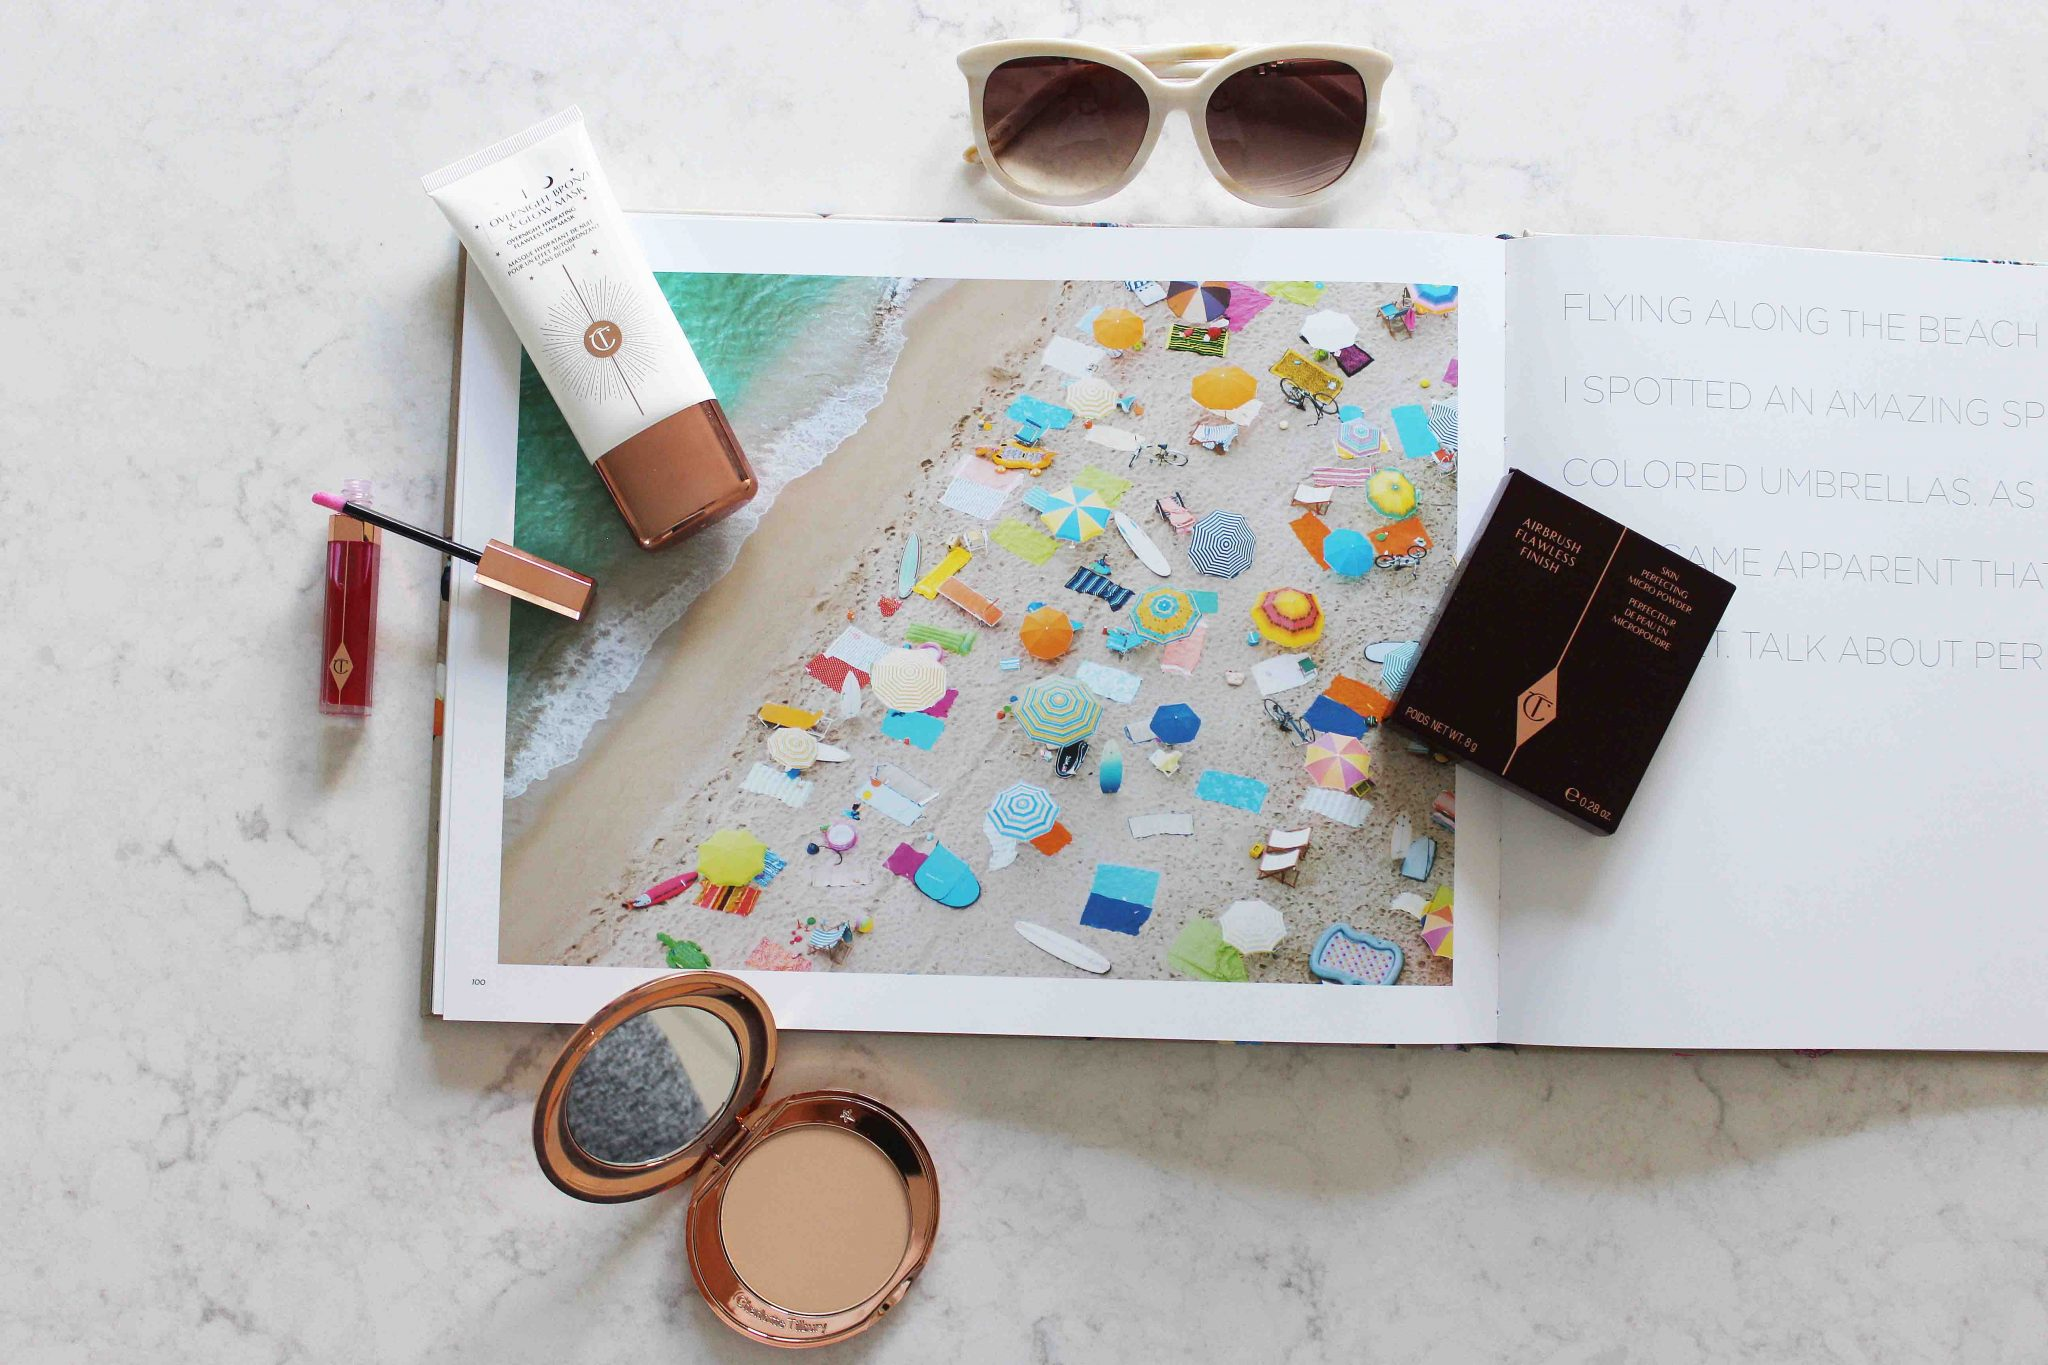 Summer Makeup Routine with Charlotte Tilbury